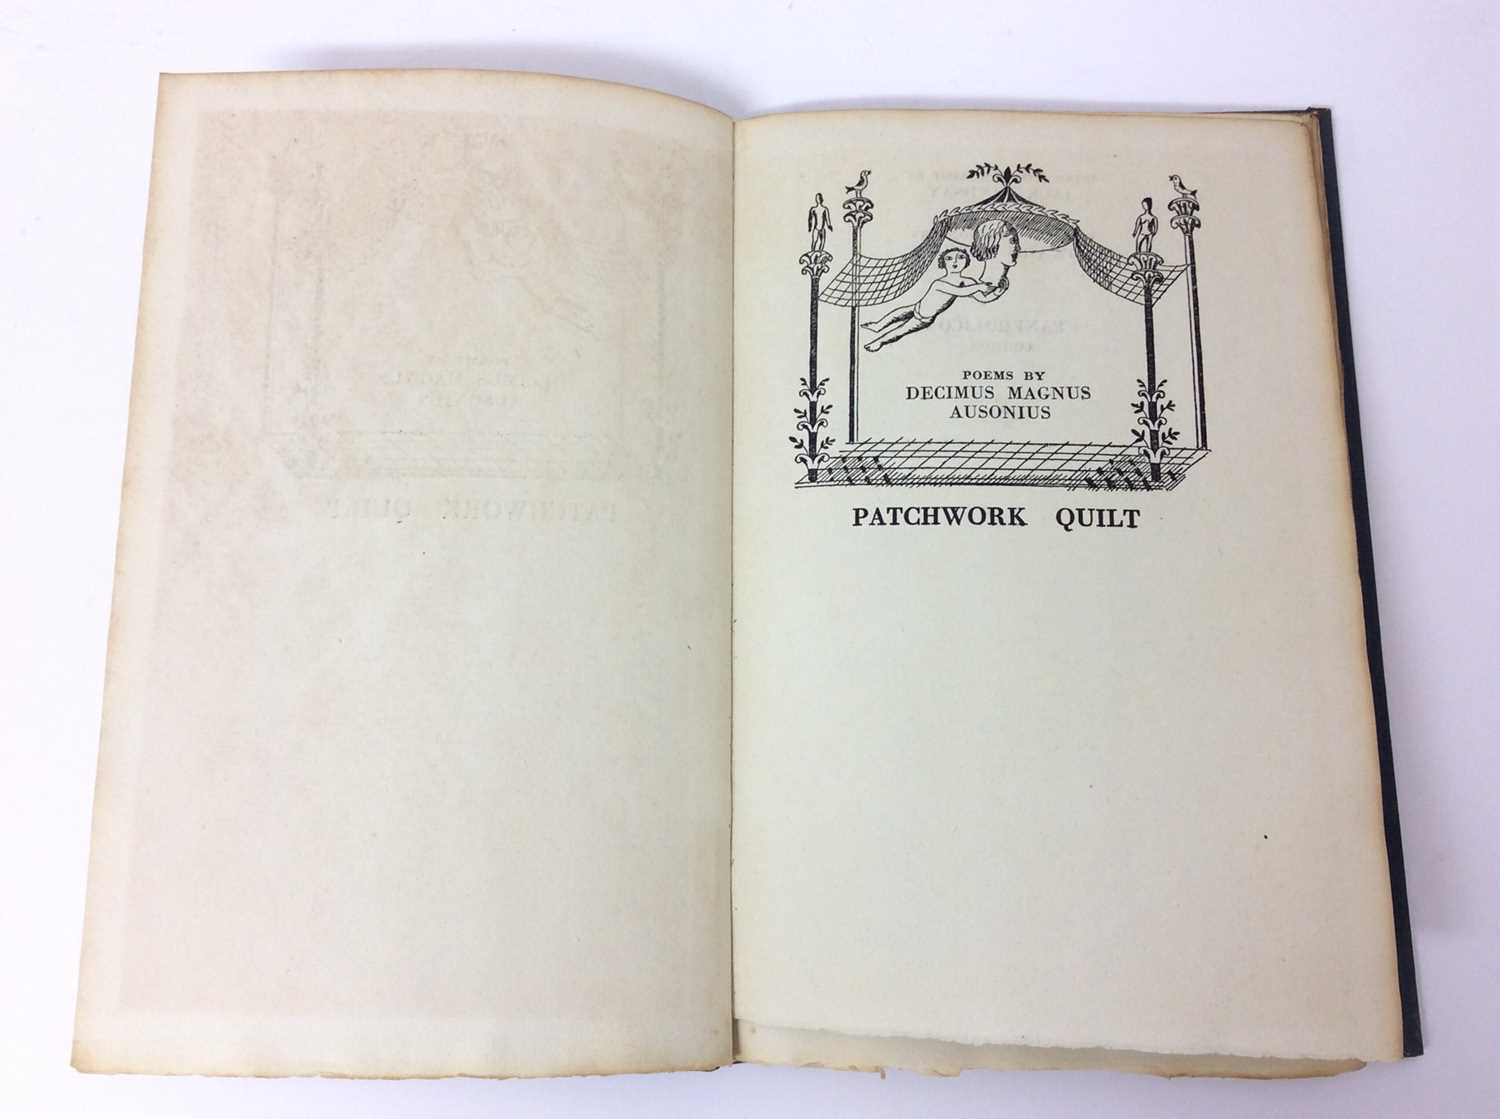 Patchwork Quilt. Poems by Decimus Magnus Ausonius, with illustrations by Edward Bawden, Franfrolico - Image 2 of 7